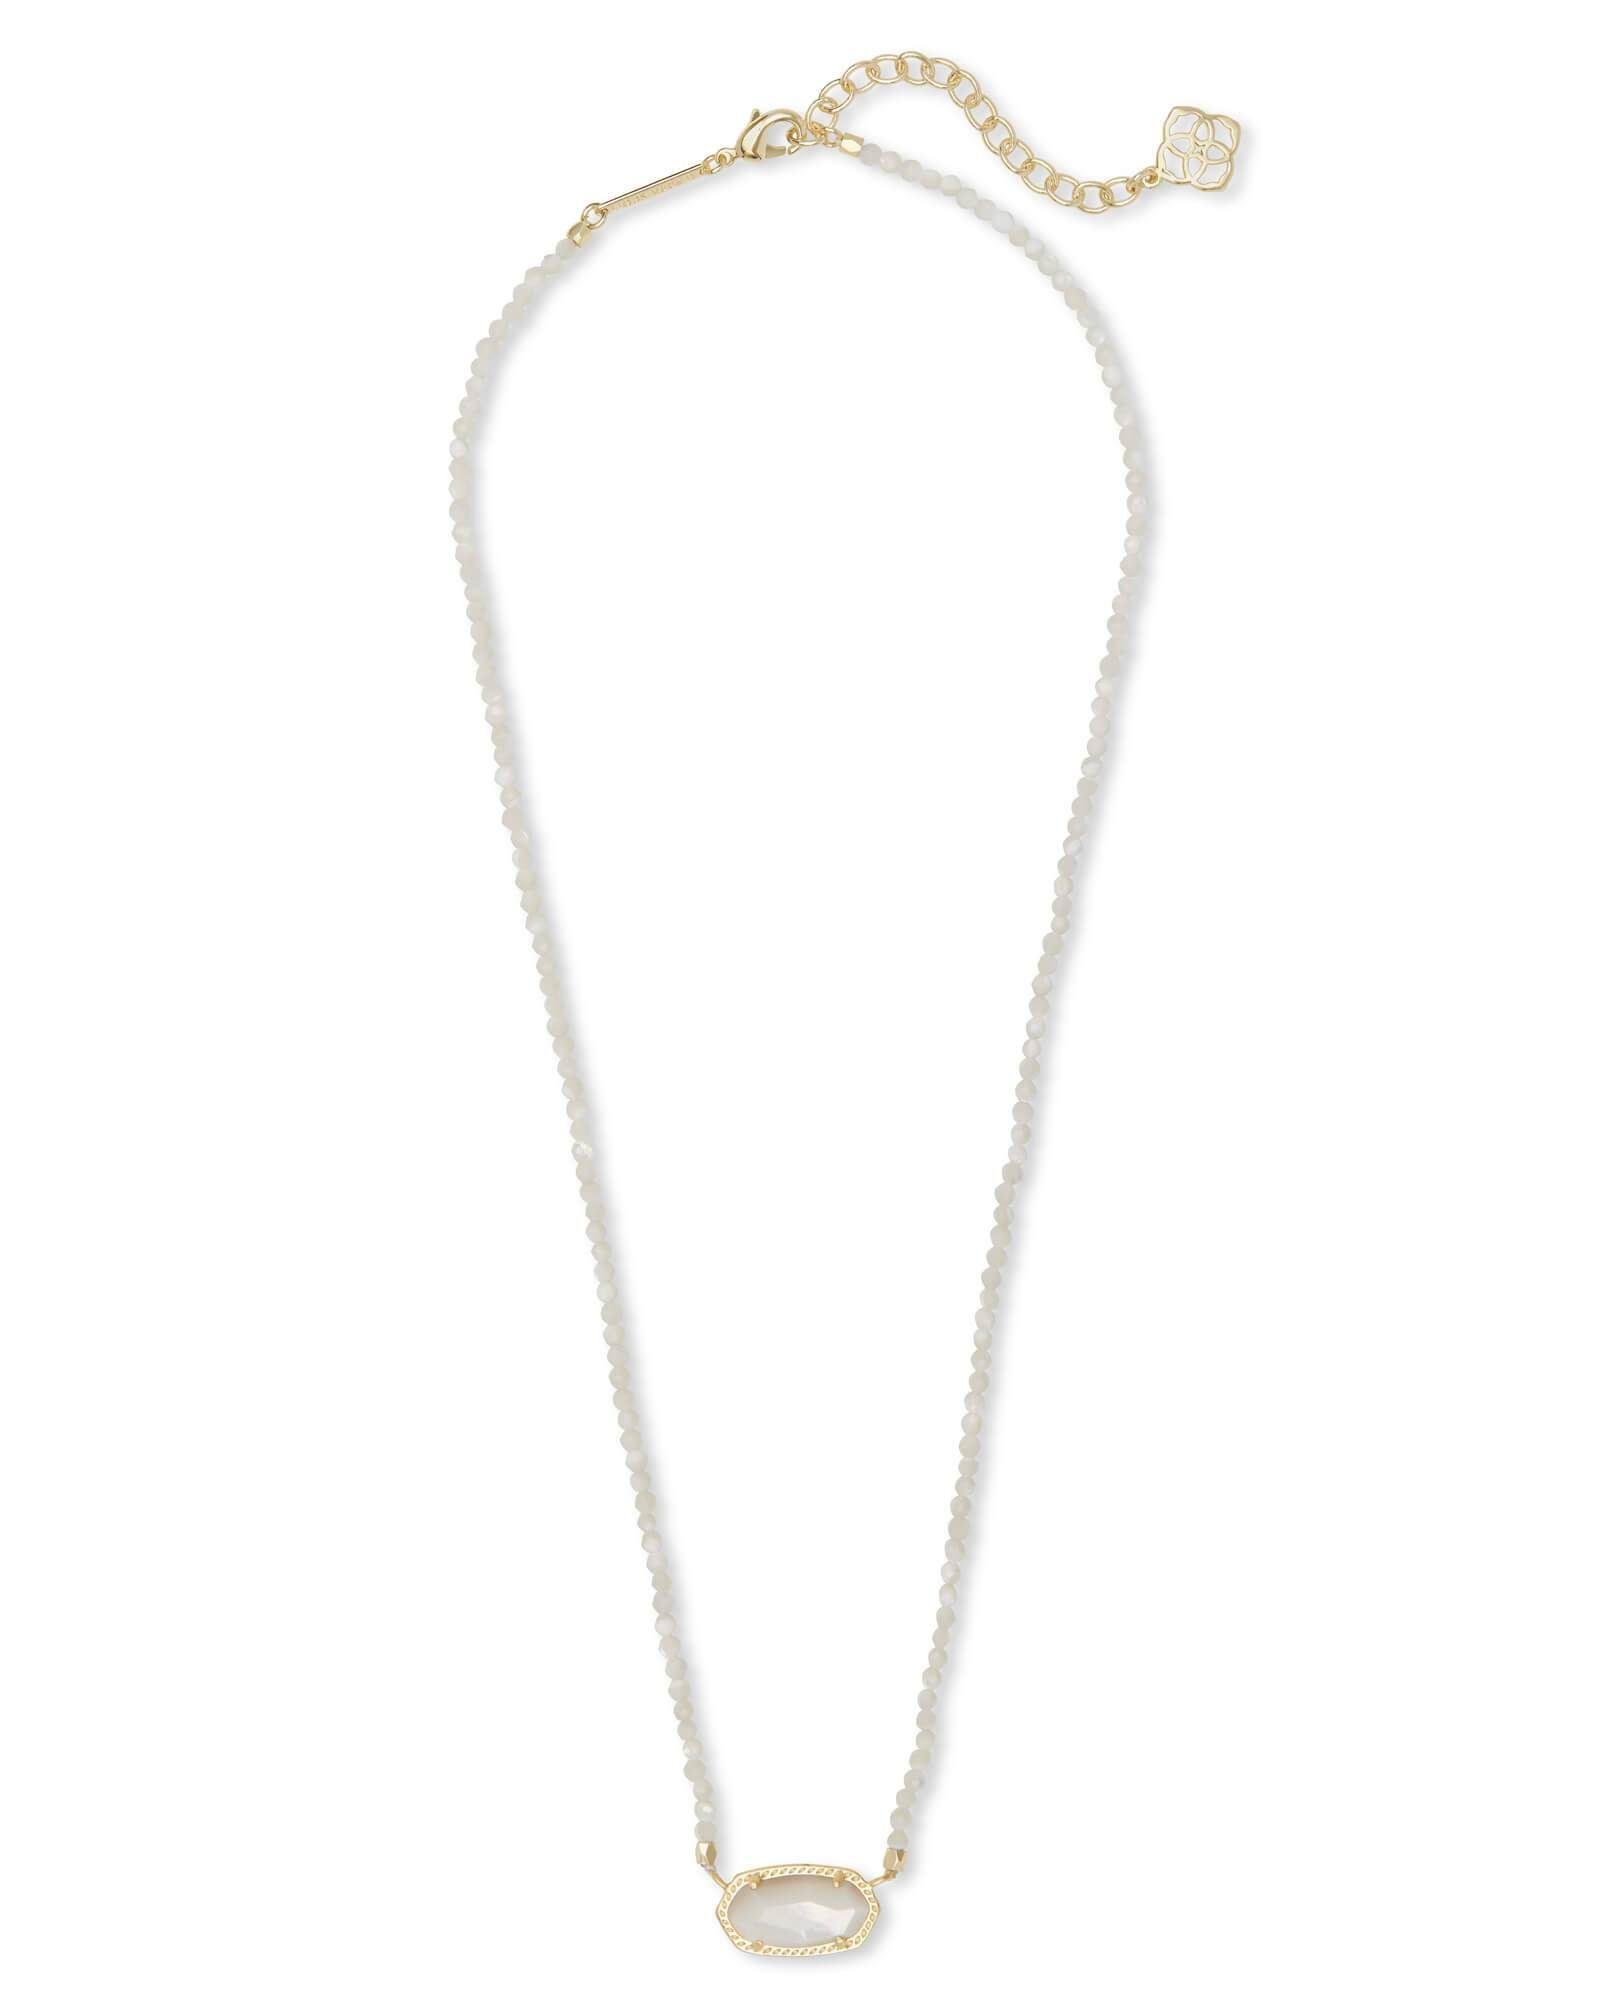 Kendra scott elisa gold beaded pendant necklace in ivory pearl